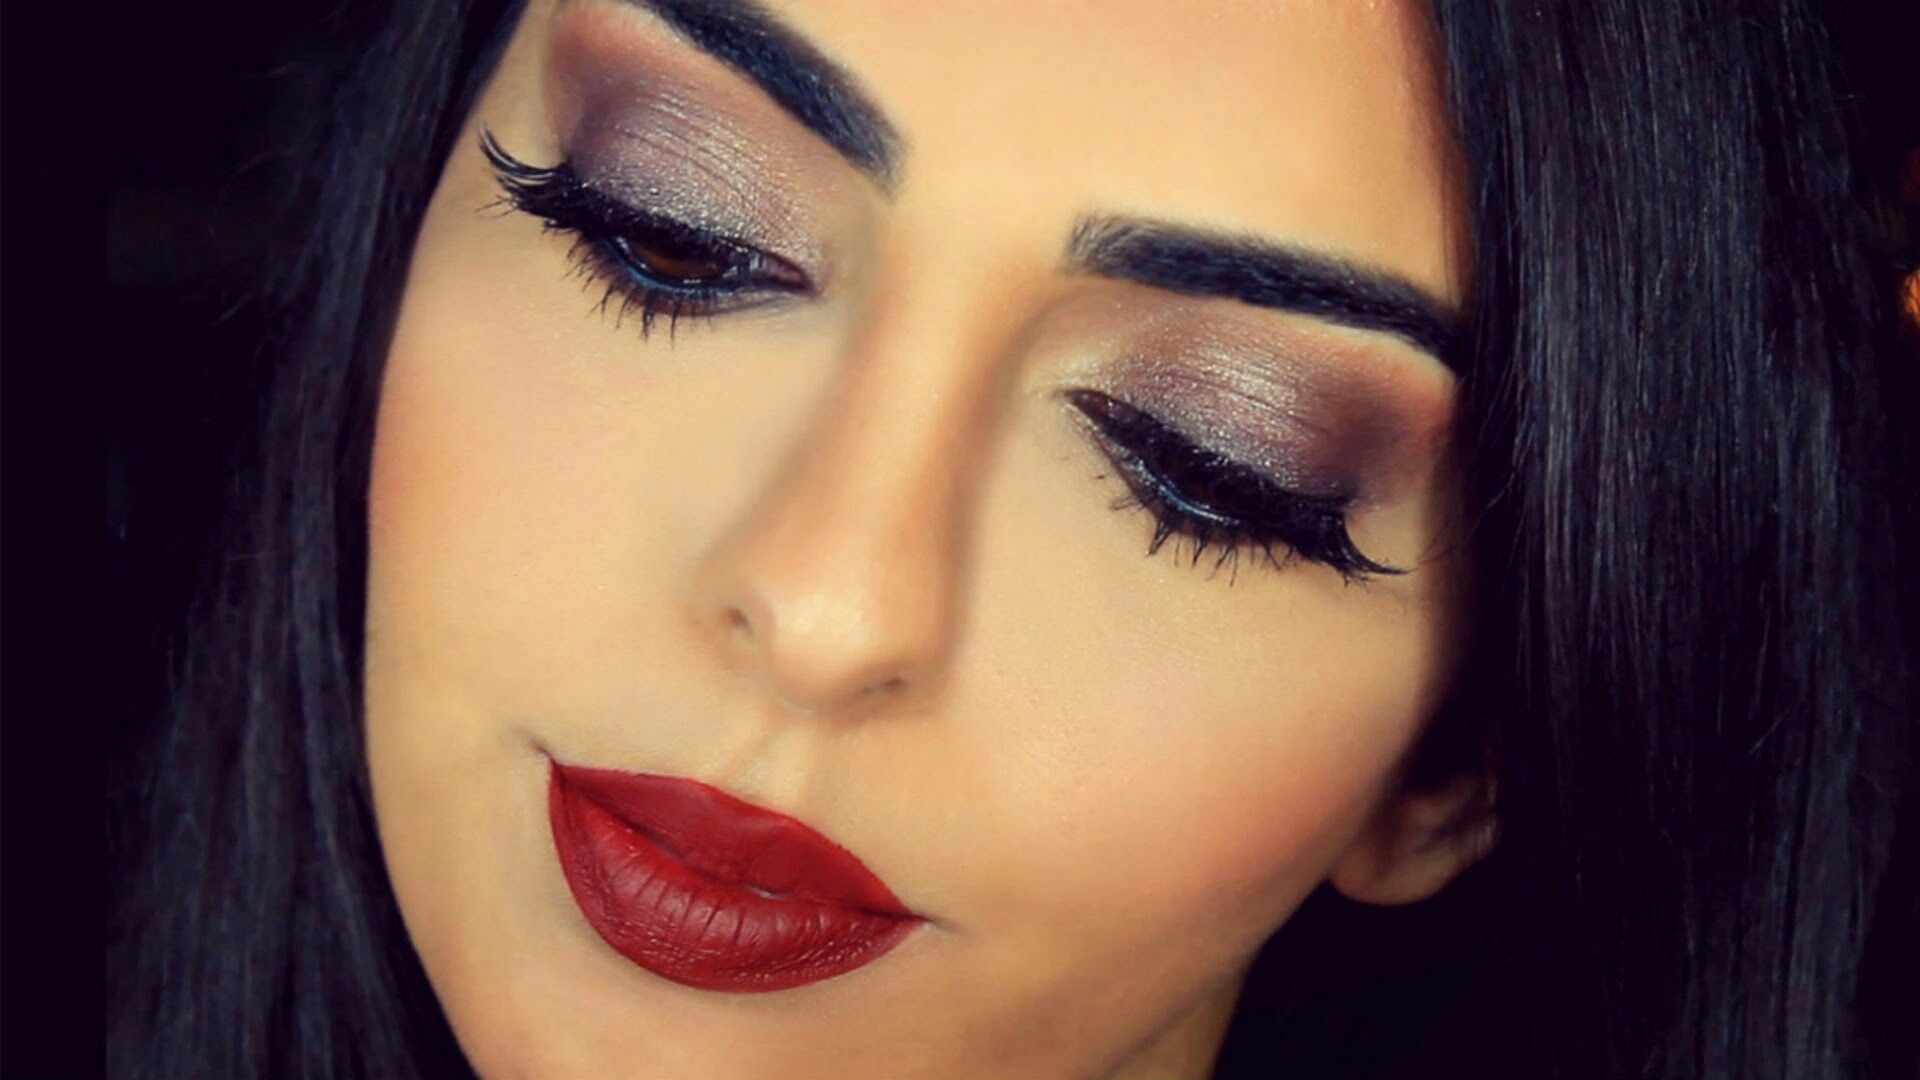 Pin by Umme aymen on Makeup (With images) Makeup lessons